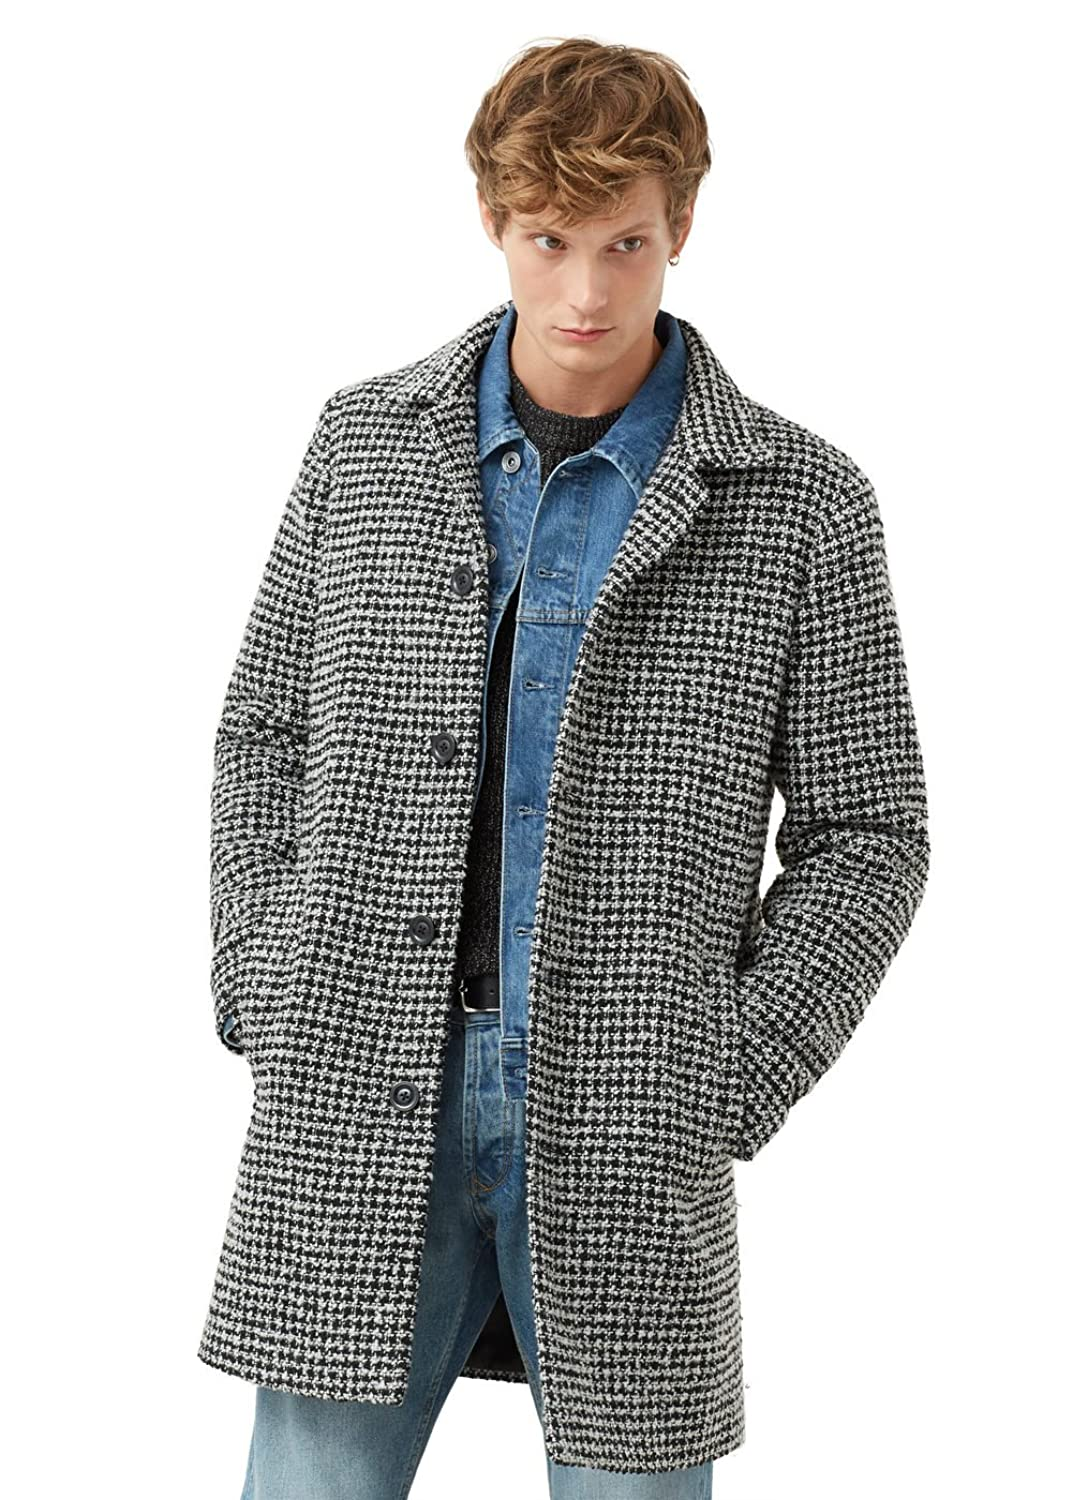 MANGO MAN - Tailored houndstooth Coats overcoat - Size:M - Color:Black